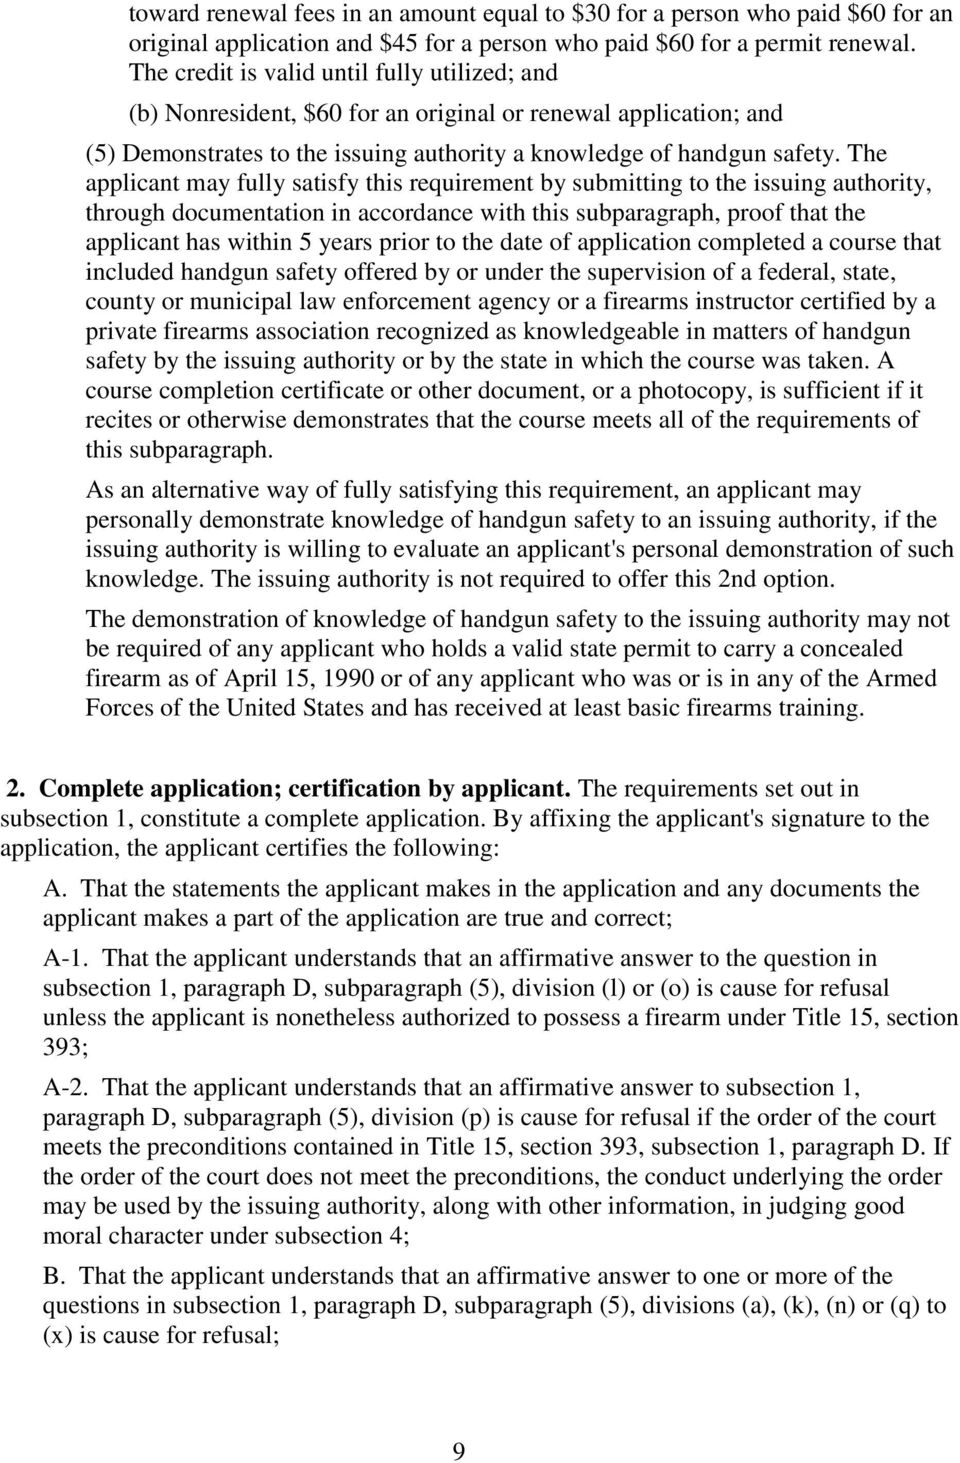 The applicant may fully satisfy this requirement by submitting to the issuing authority, through documentation in accordance with this subparagraph, proof that the applicant has within 5 years prior